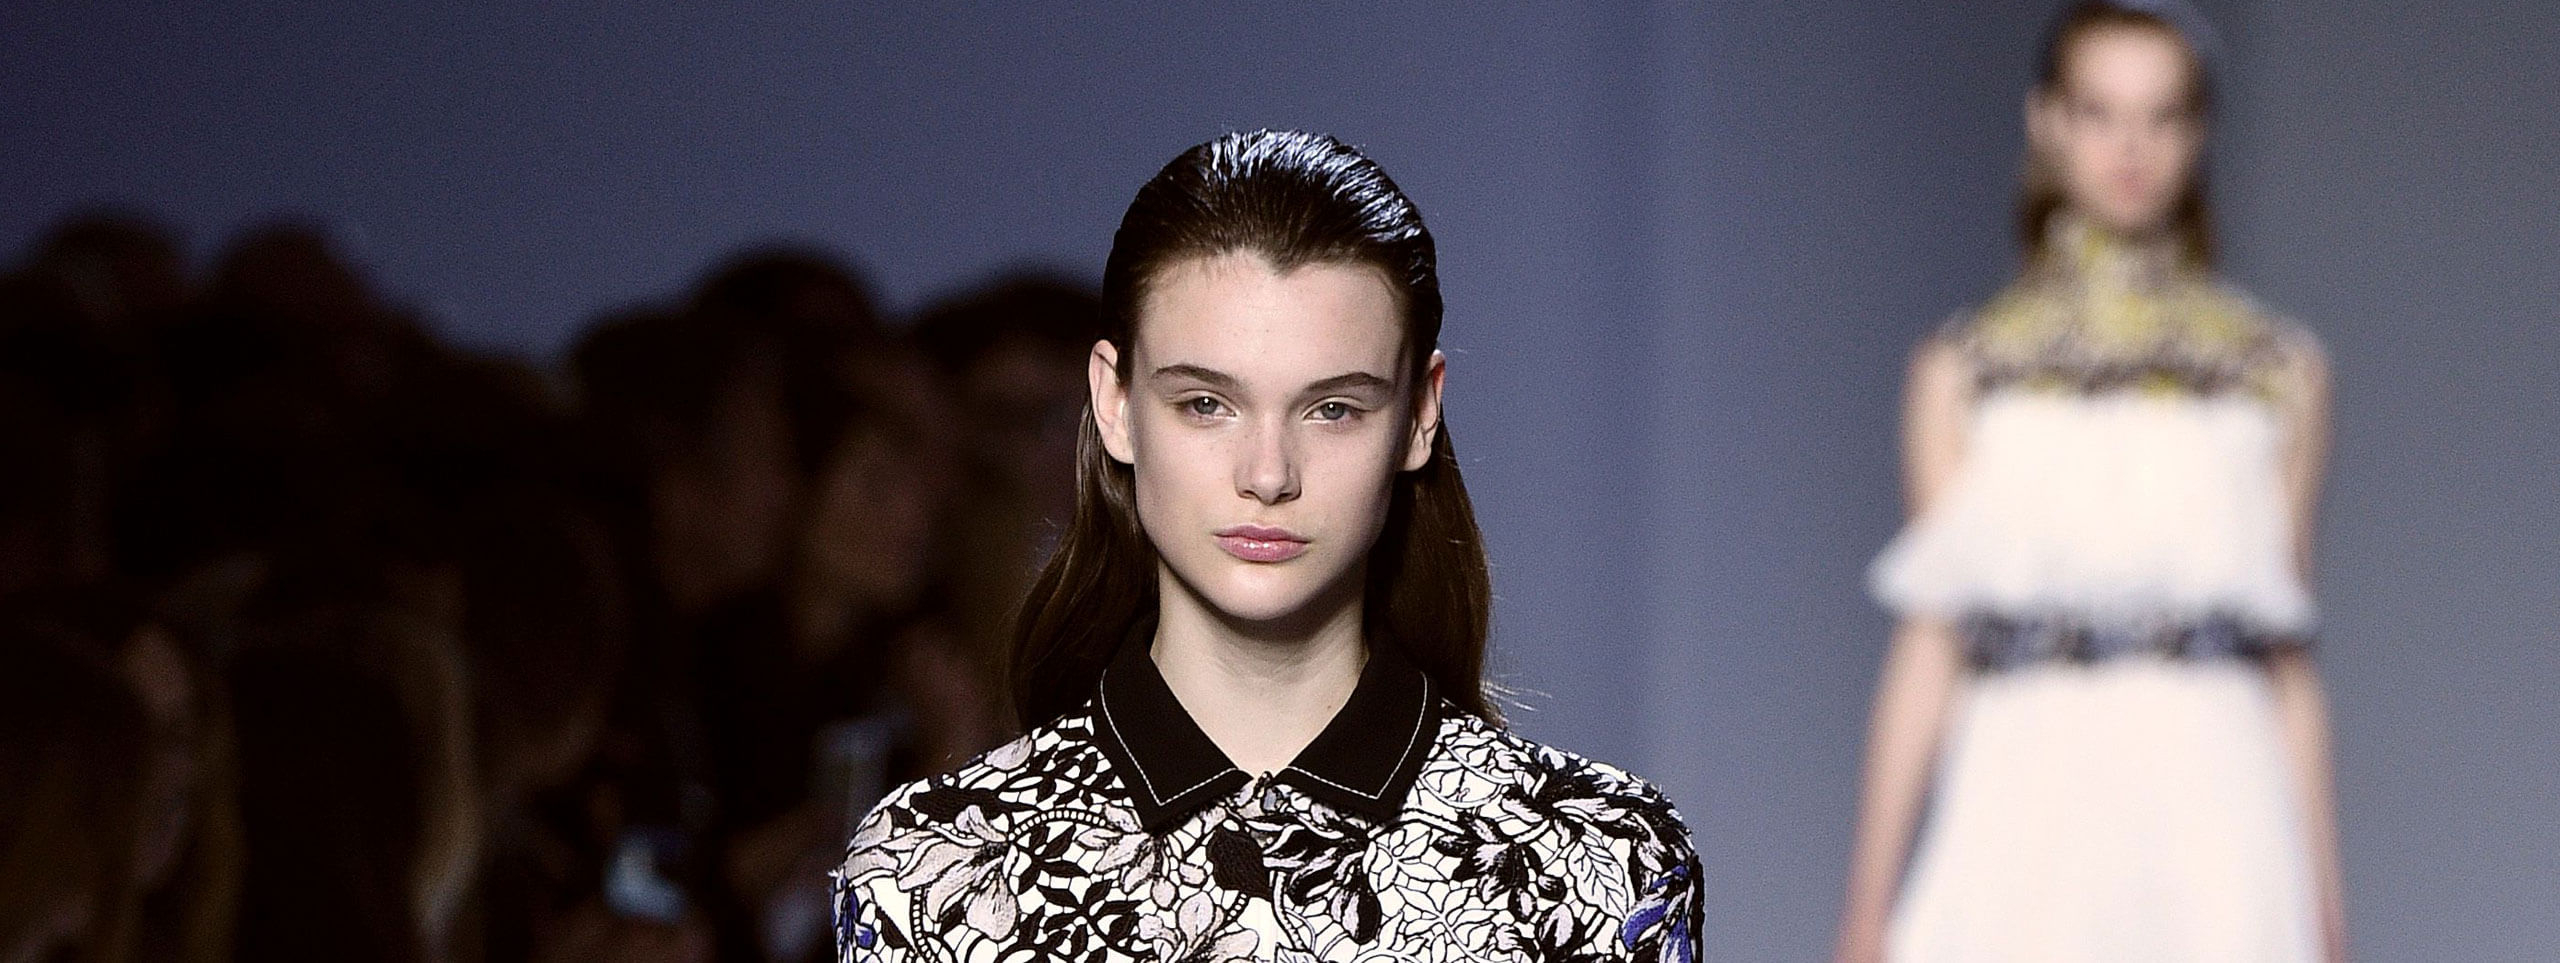 Slicked Back Hair: Women's Top Styles Intended For Current Long Hairstyles With Slicked Back Top (View 14 of 20)